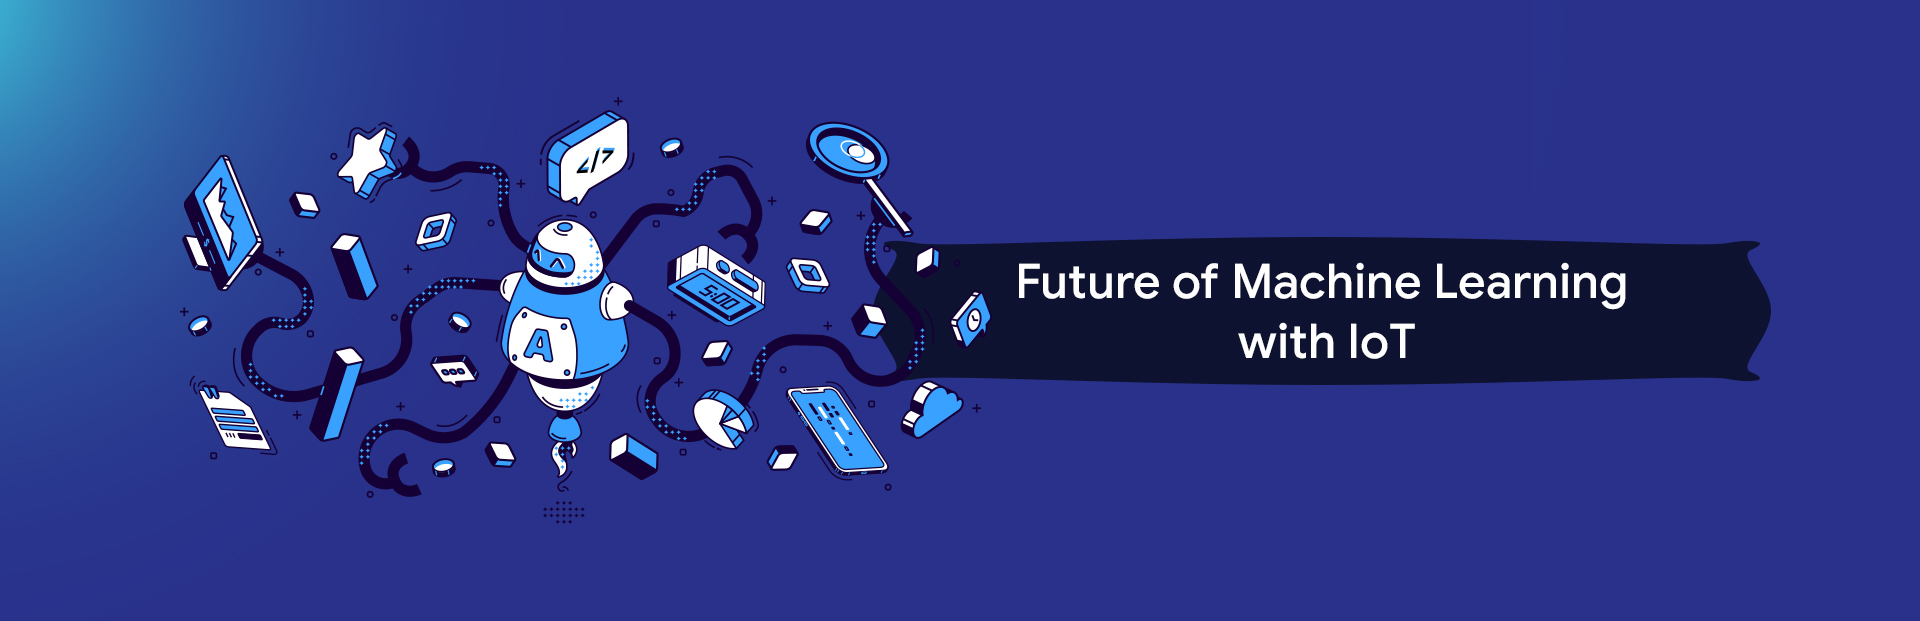 Explore the future of Machine Learning with IoT to achieve business success